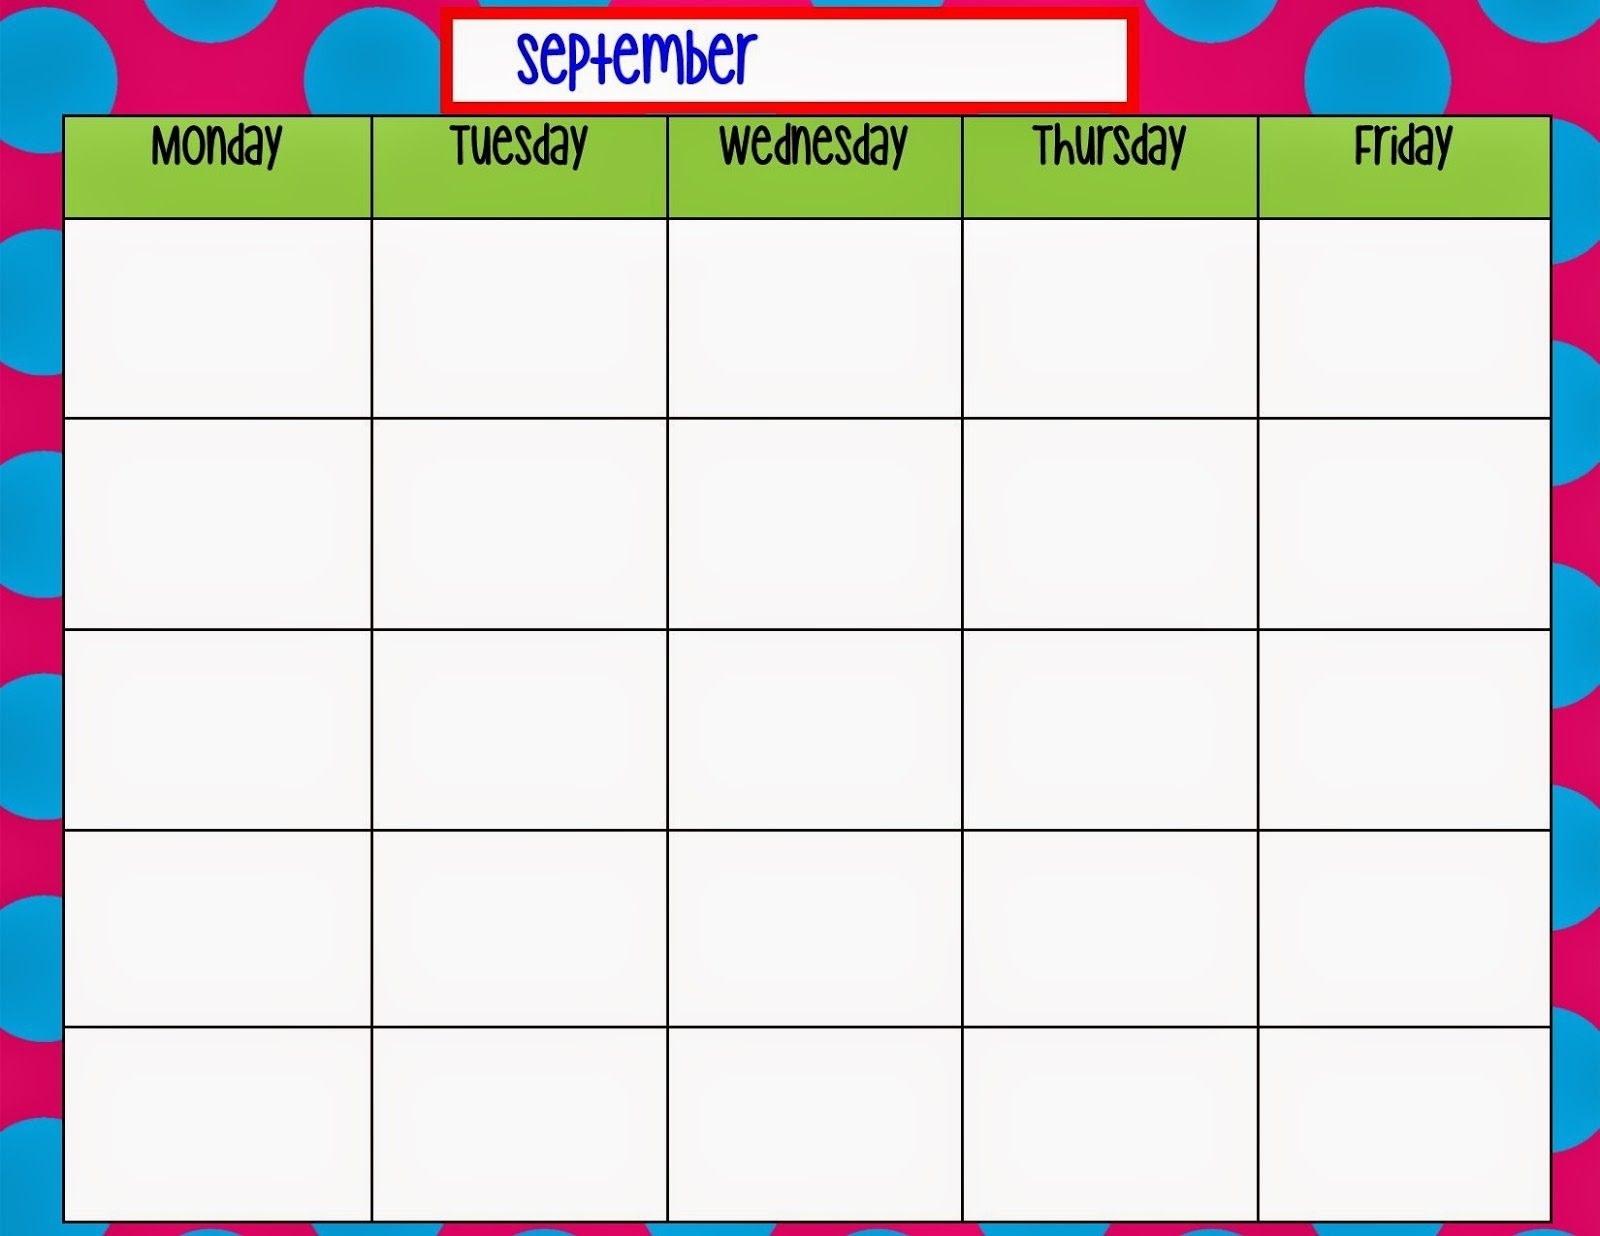 Get Weekly Timetable Mon To Fri